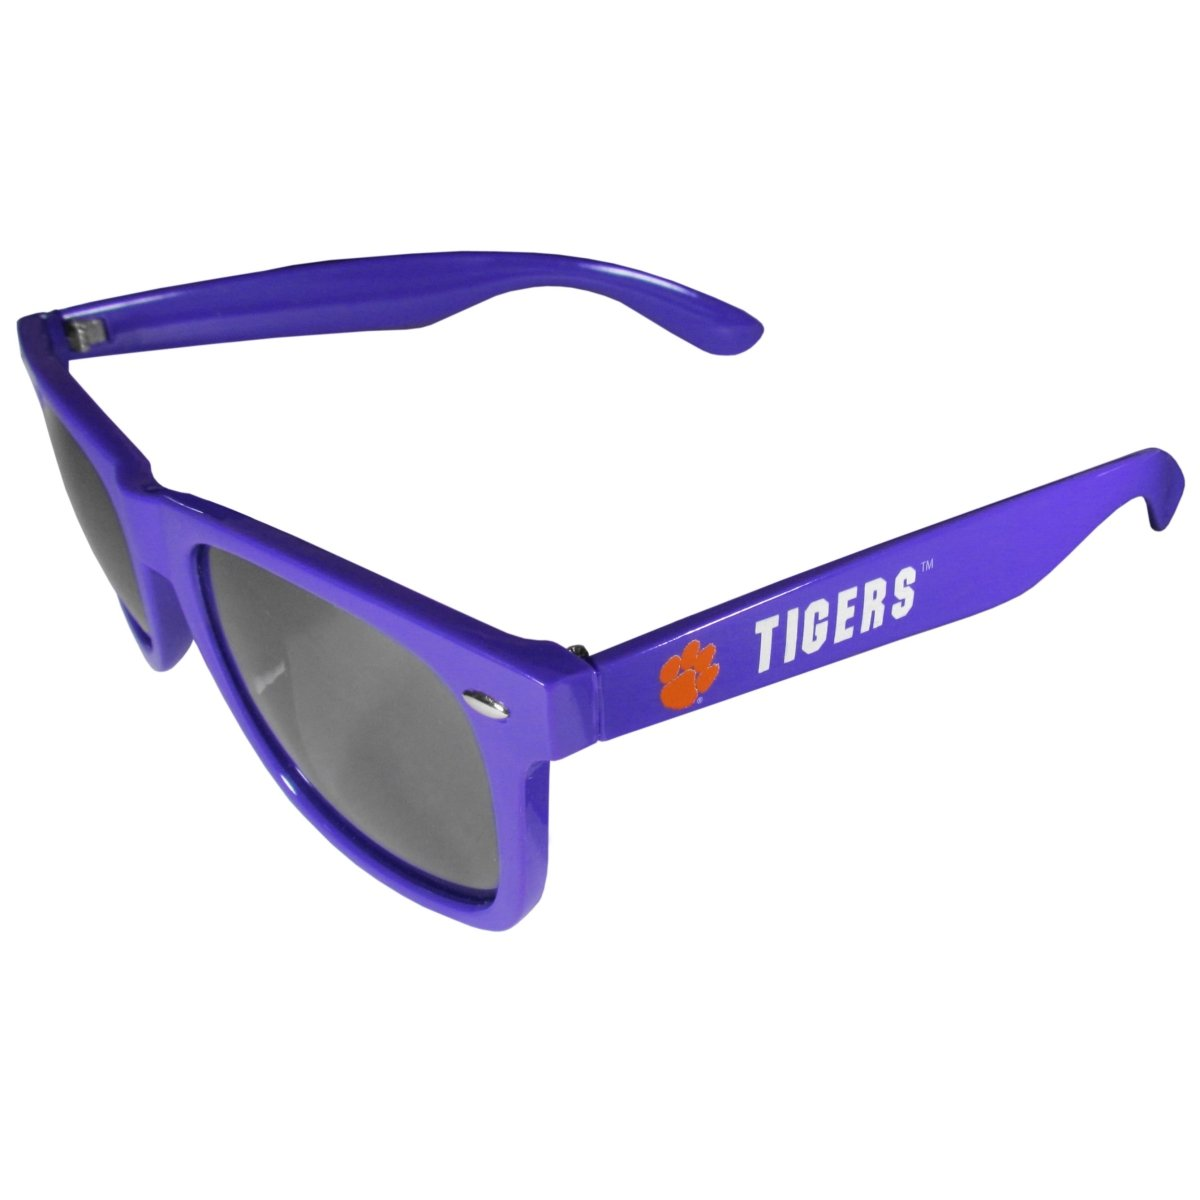 Siskiyou Clemson Tigers Beach Farer Sunglasses - Mr. Knickerbocker